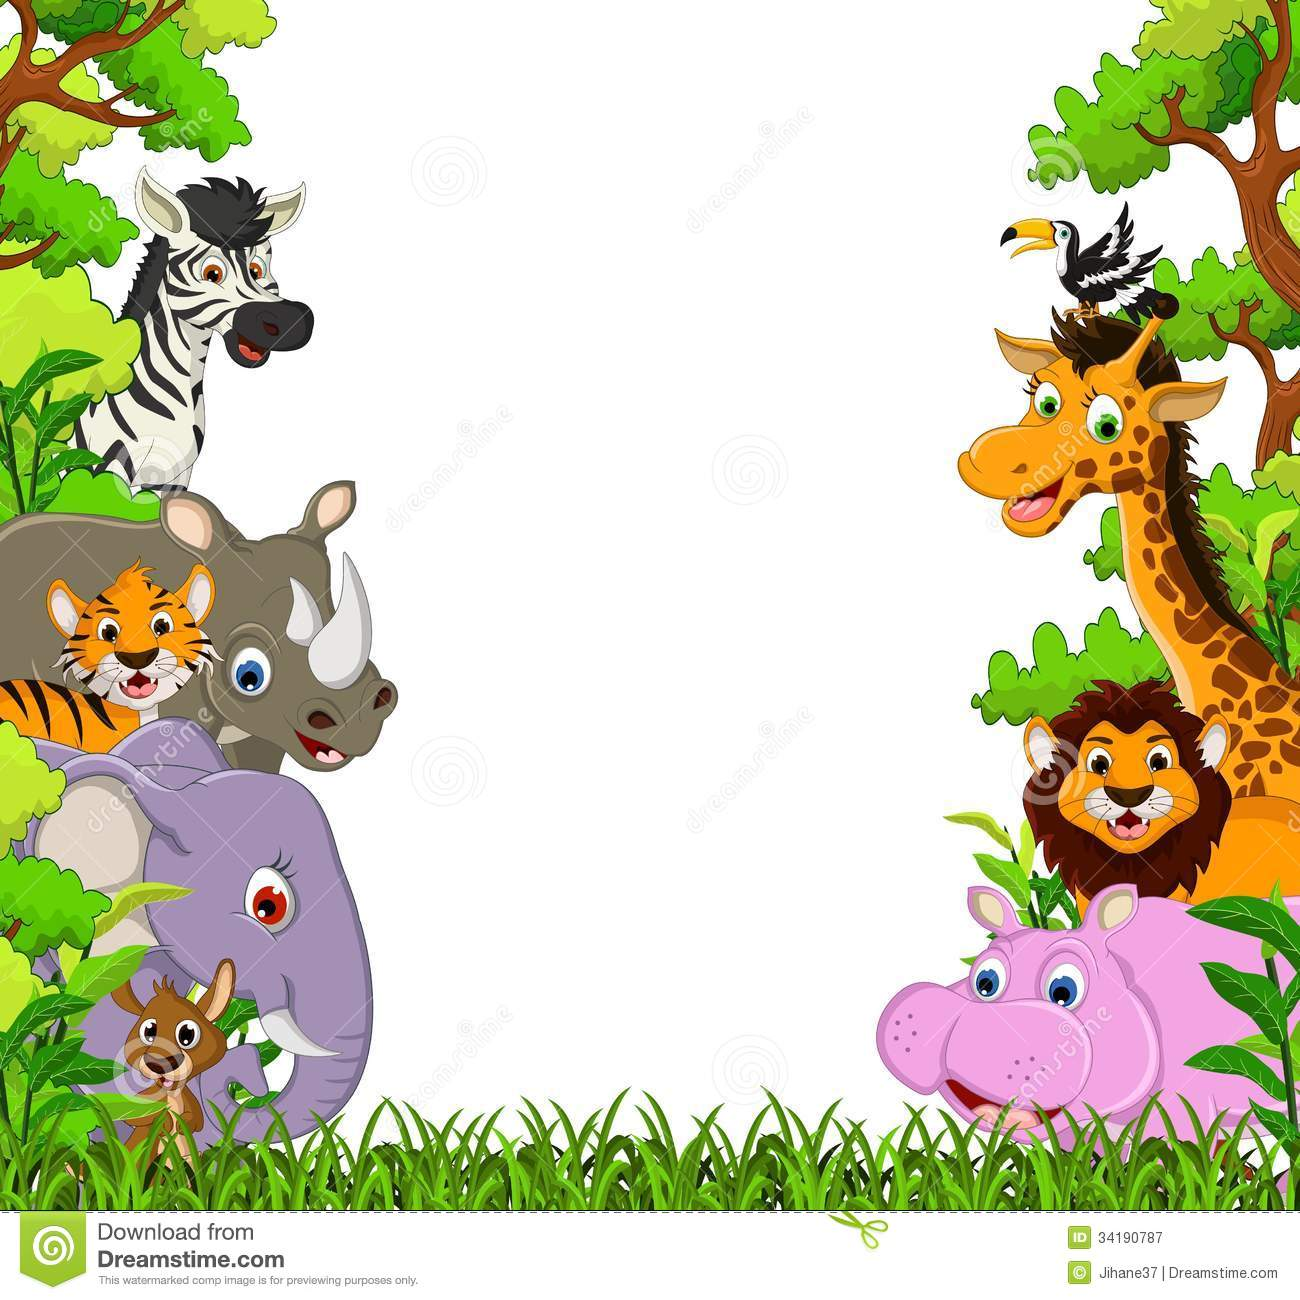 Jungle Animal Background Clipart.